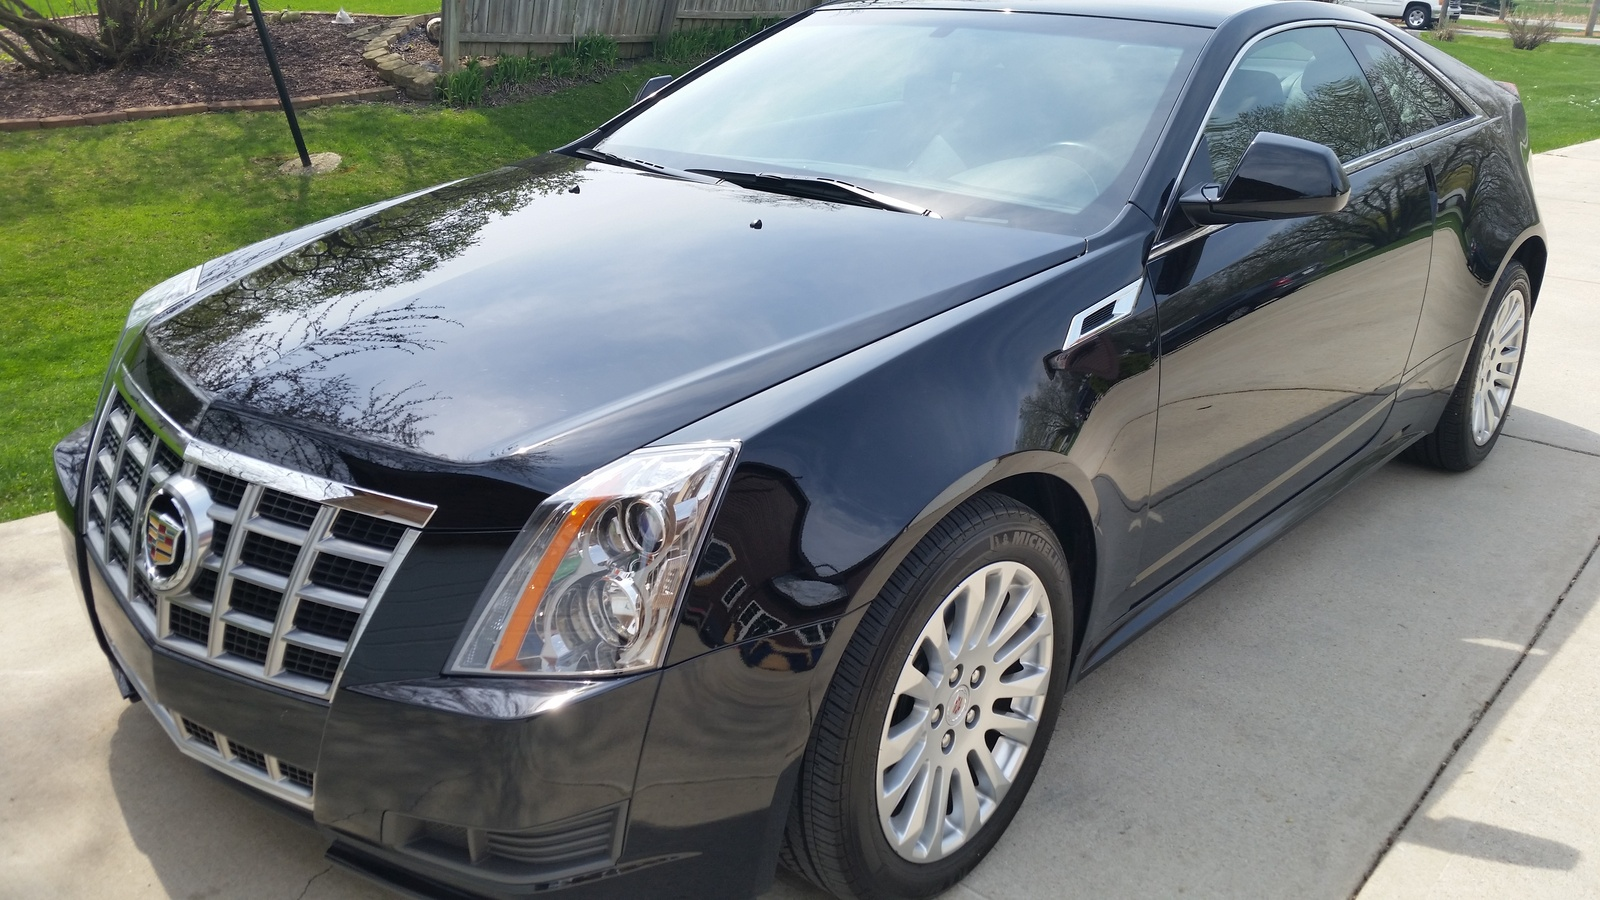 New 2014 Cadillac CTS Coupe For Sale - CarGurus